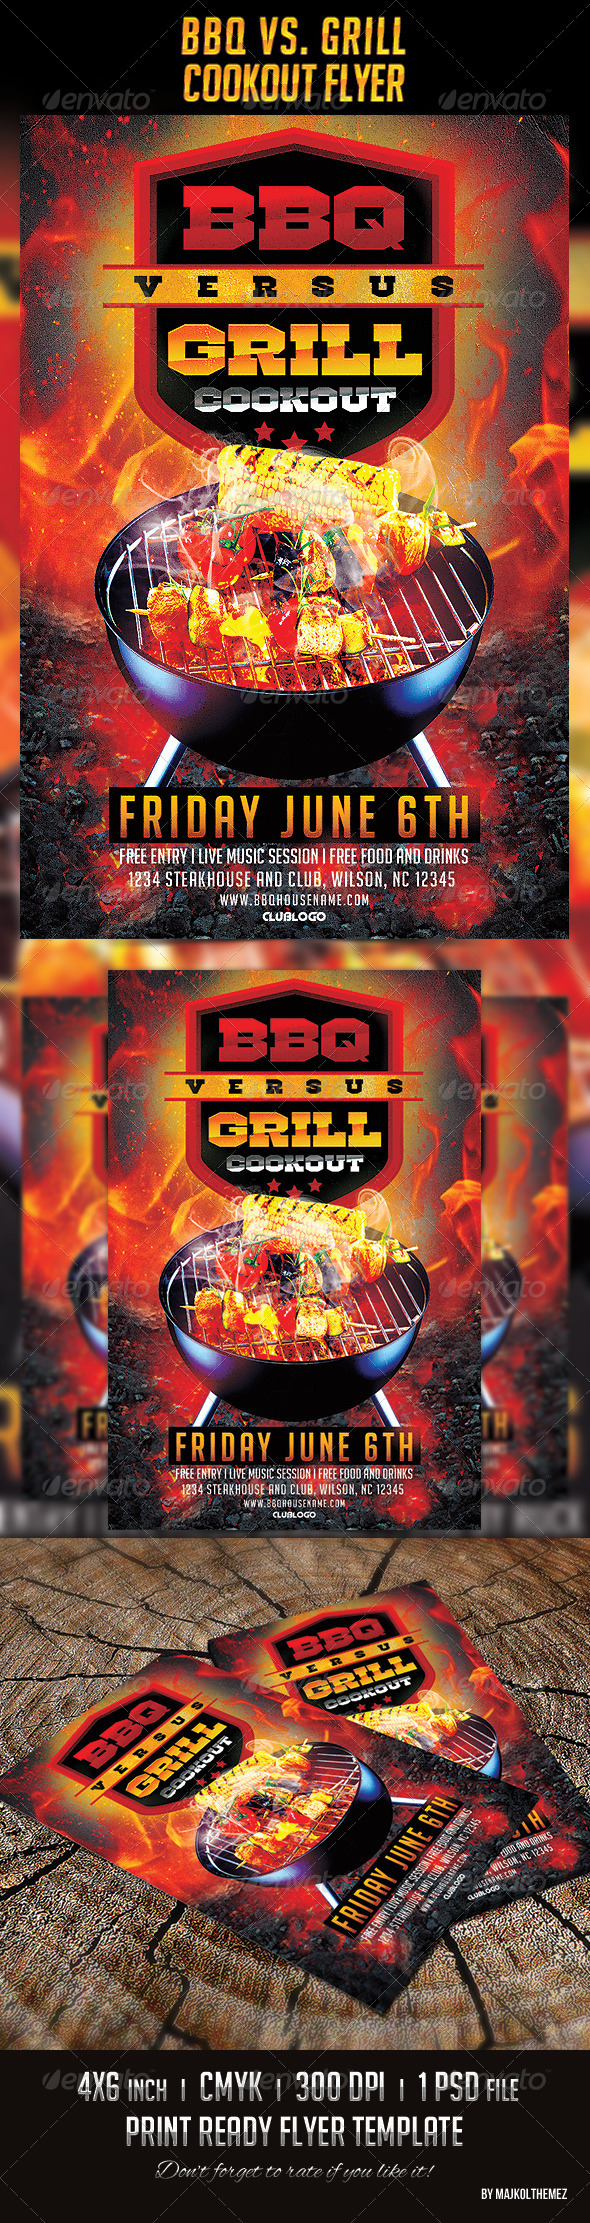 BBQ vs Grill Cookout Flyer